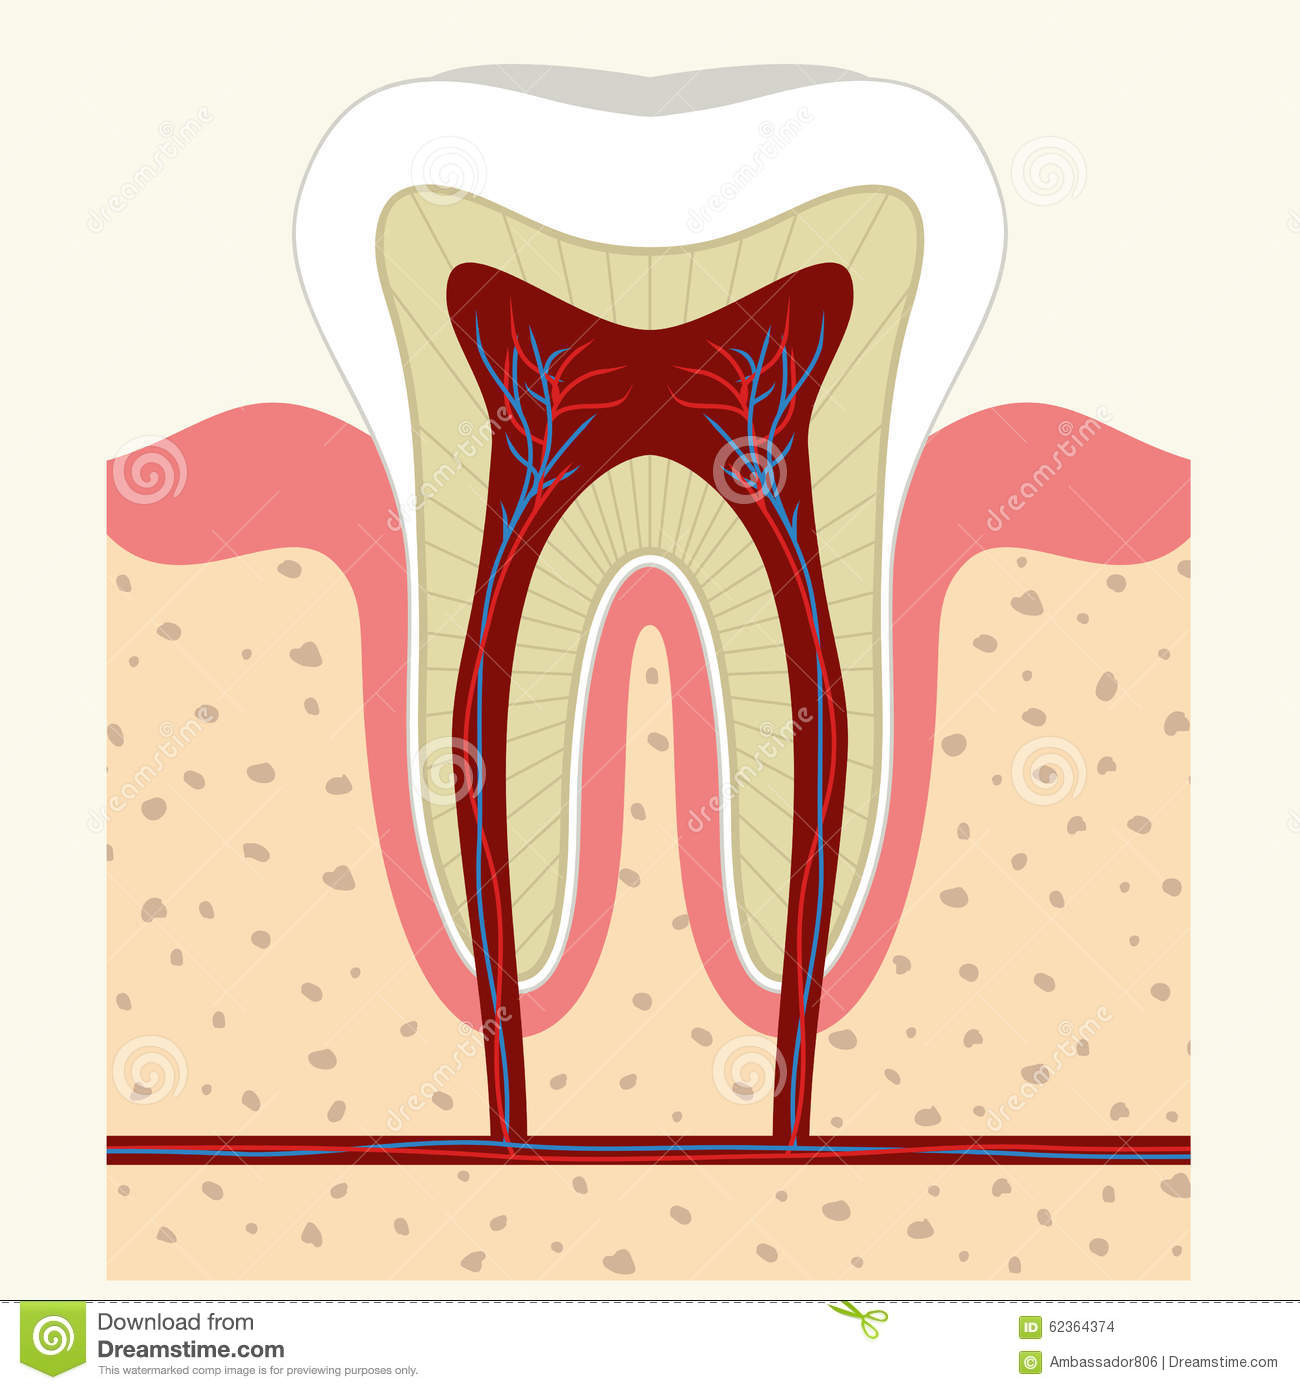 human tooth diagram 7 way navigation and gum anatomy stock vector image 62364374